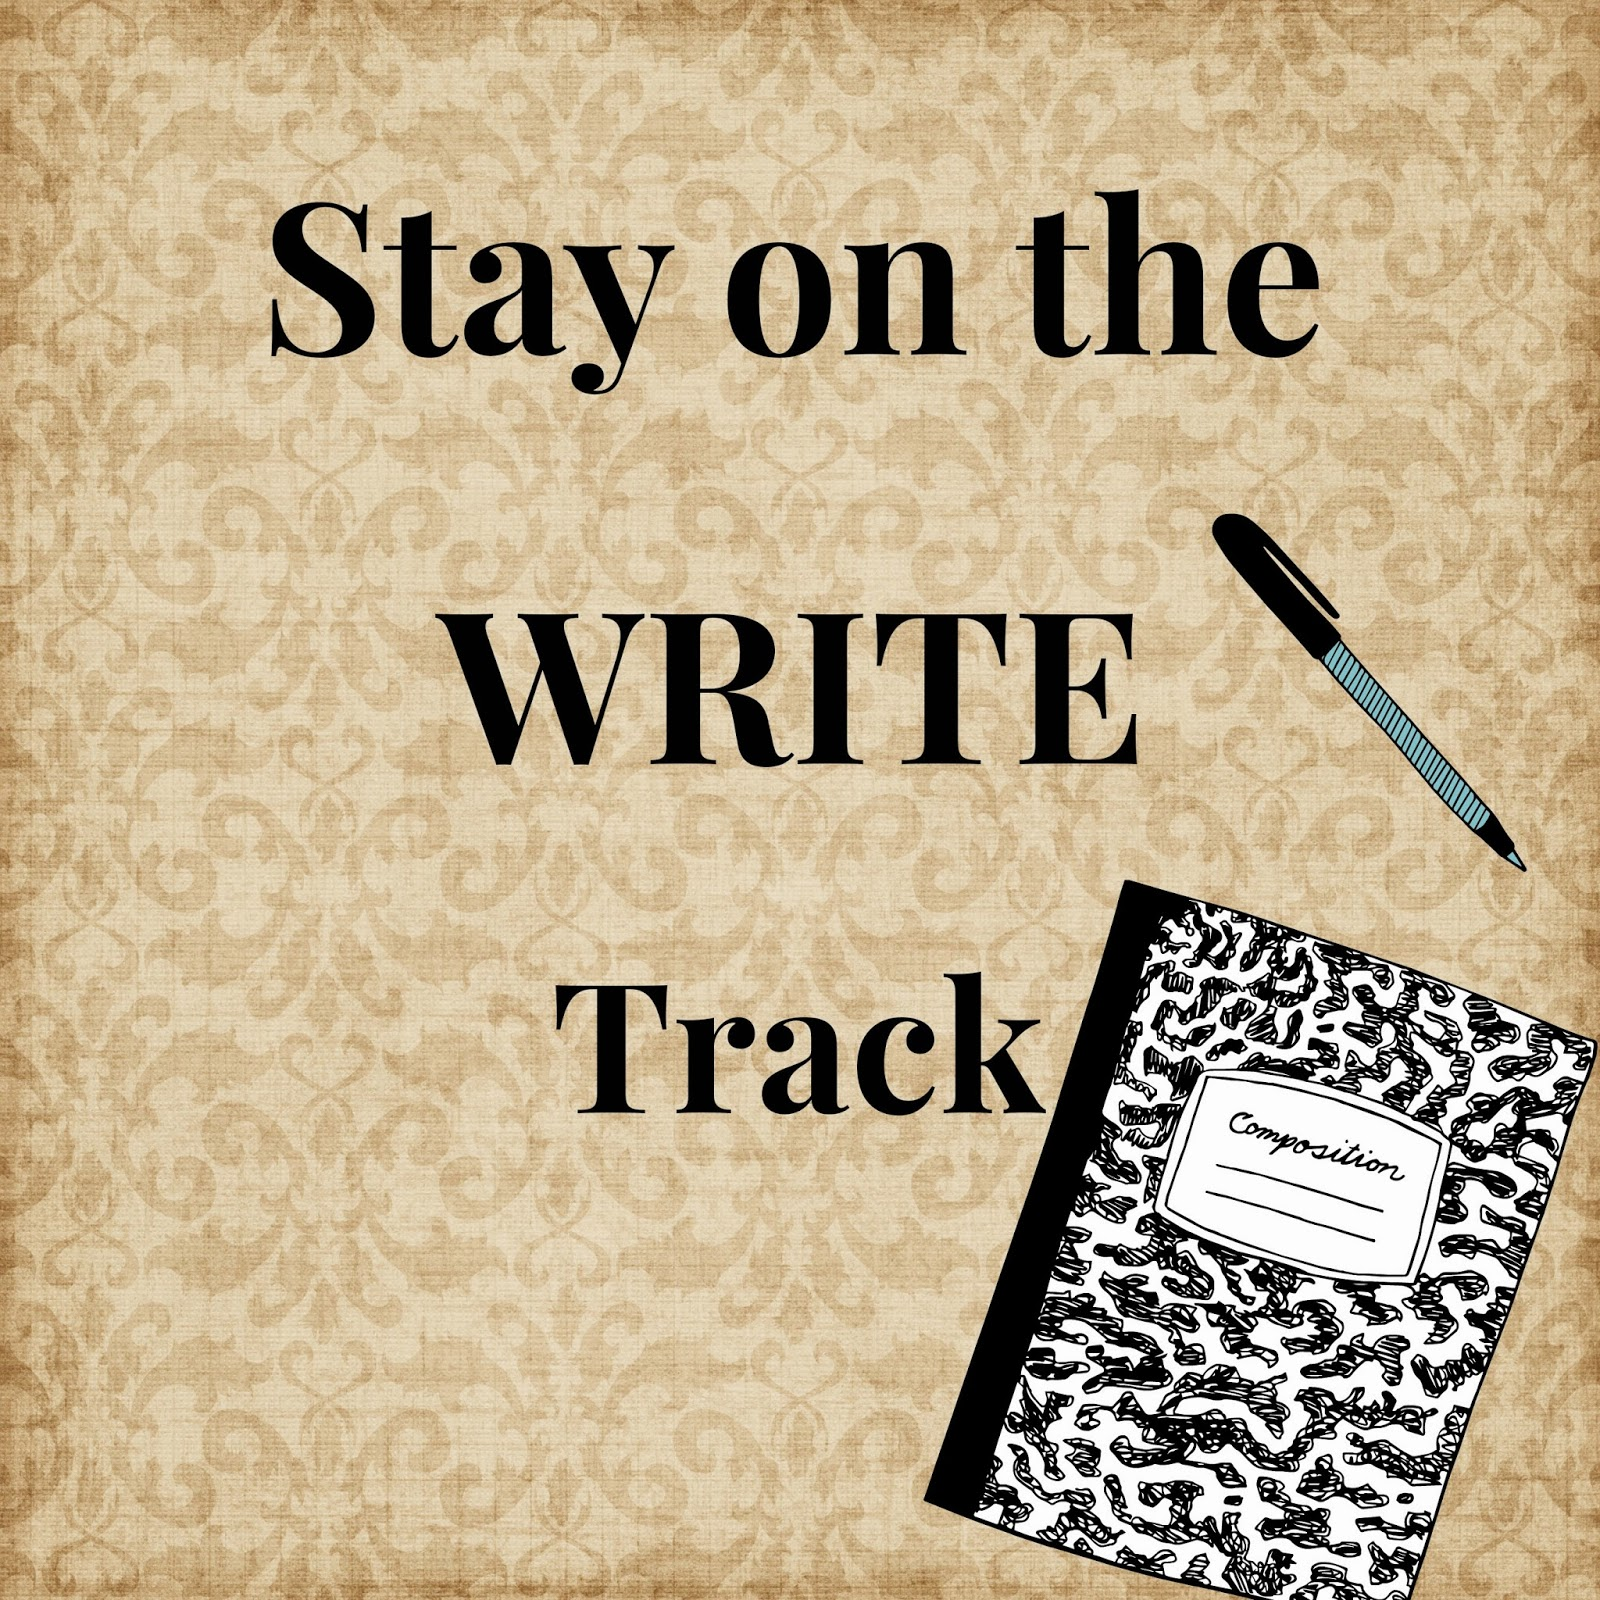 tracks essay Narrative shannon purchase essay for me written test help writing a cv free stress essay the scarlet letters from librarian.